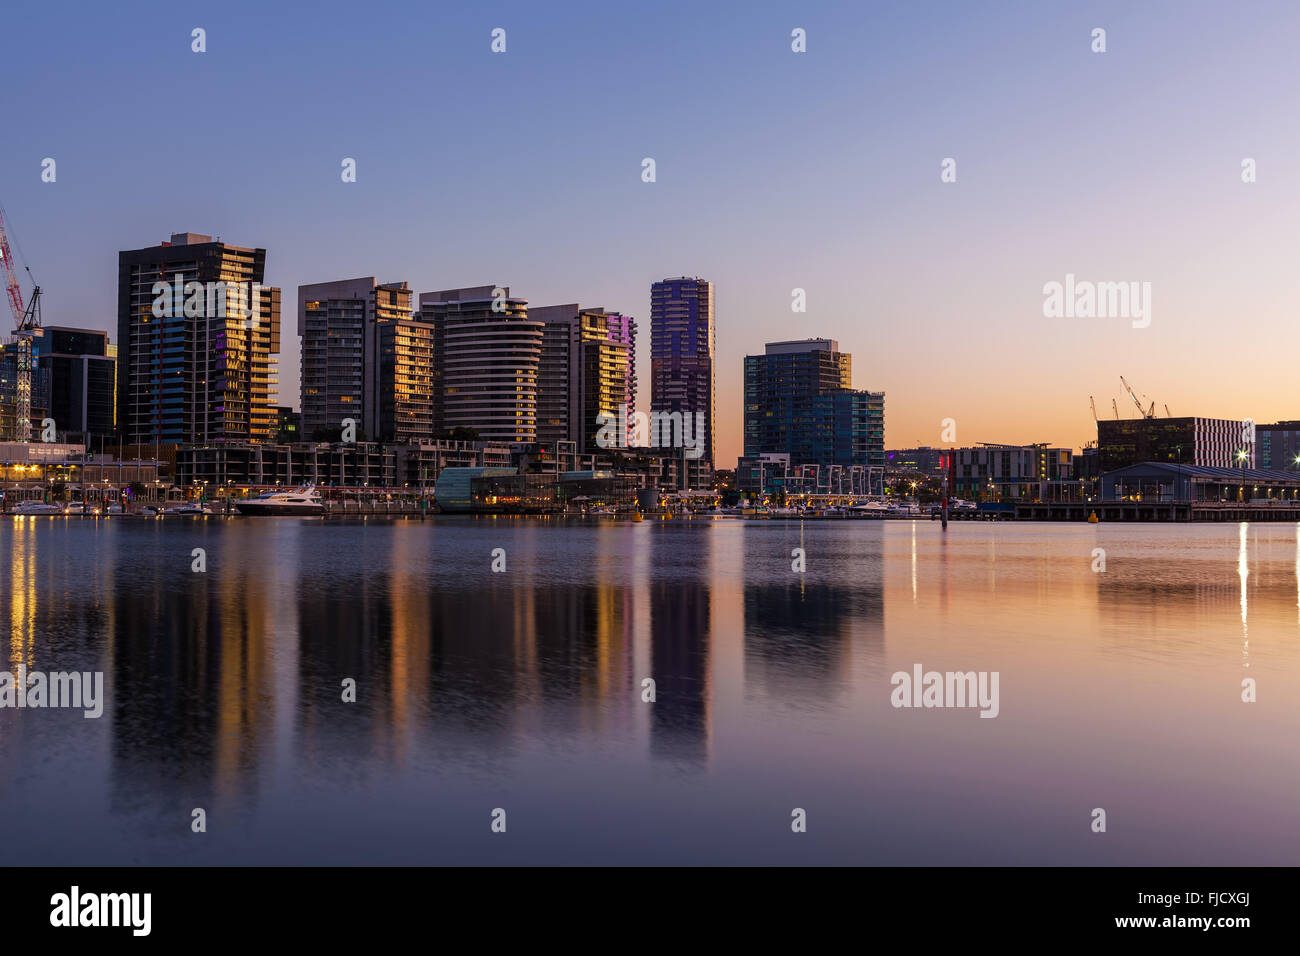 Docklands, Melbourne residential buildings and Yarra waterfront at dawn - Stock Image